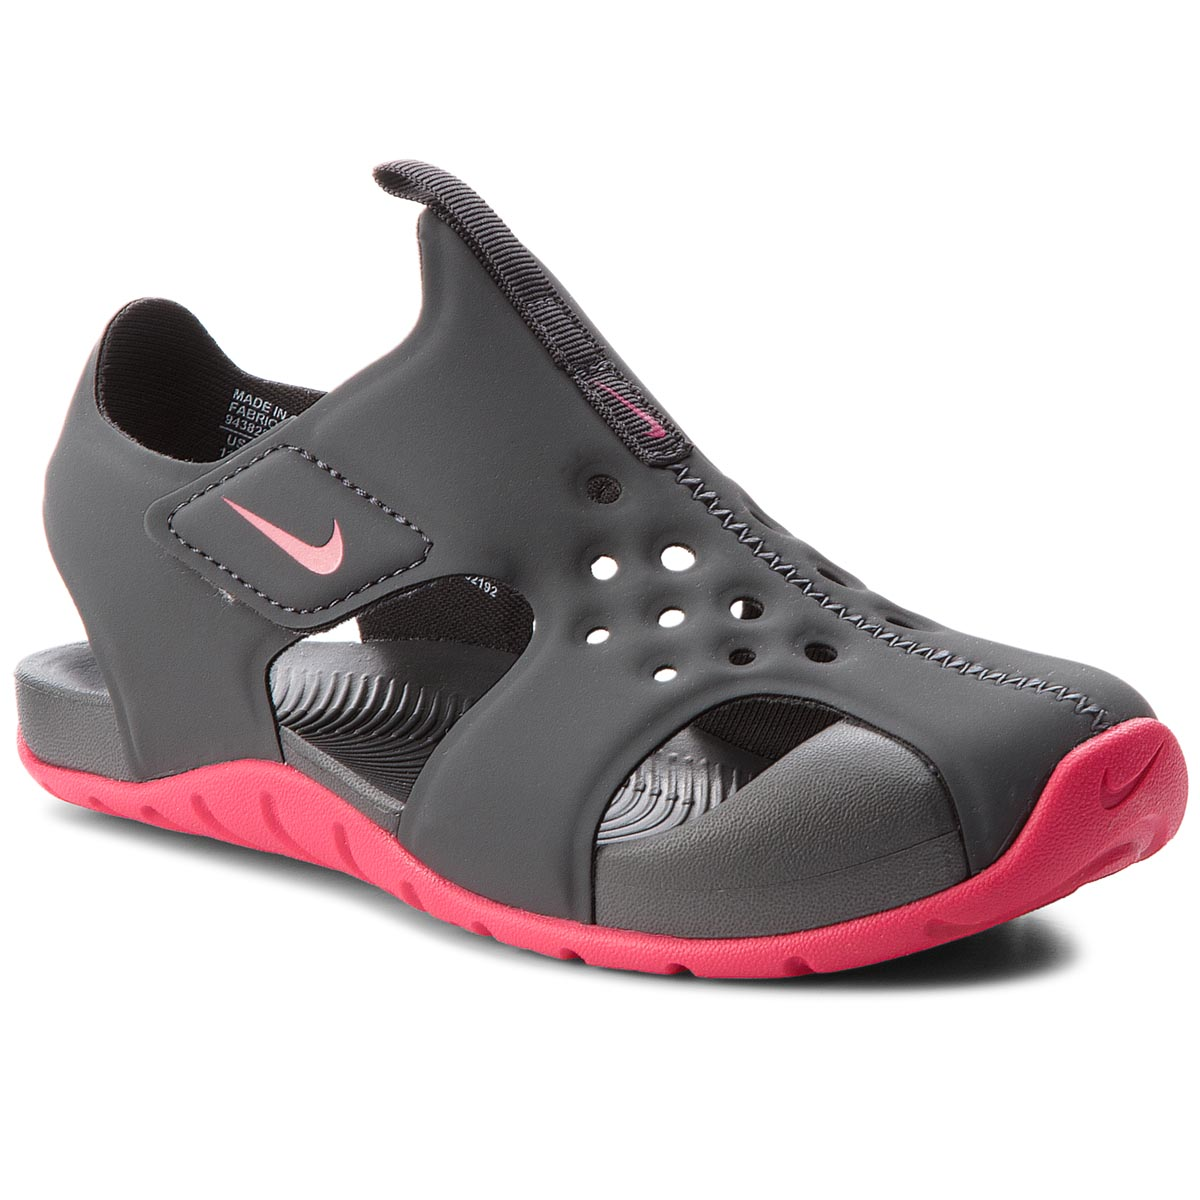 31914c19f28a Sandály NIKE - Sunray Protect 2 (PS) 943828 001 Anthracite Rush Pink